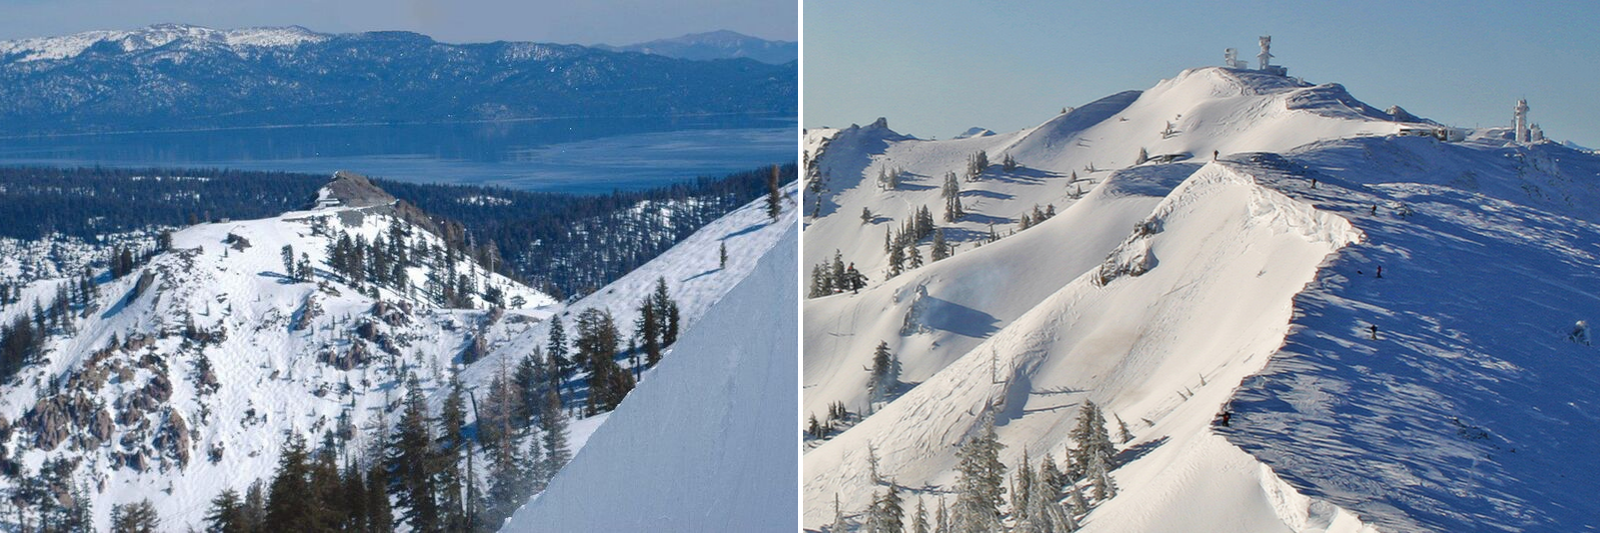 Squaw Valley and Alpine Meadows: Tales from Two Valley 70th Anniversary Edition   Photo and book by Eddy Starr Ancinas